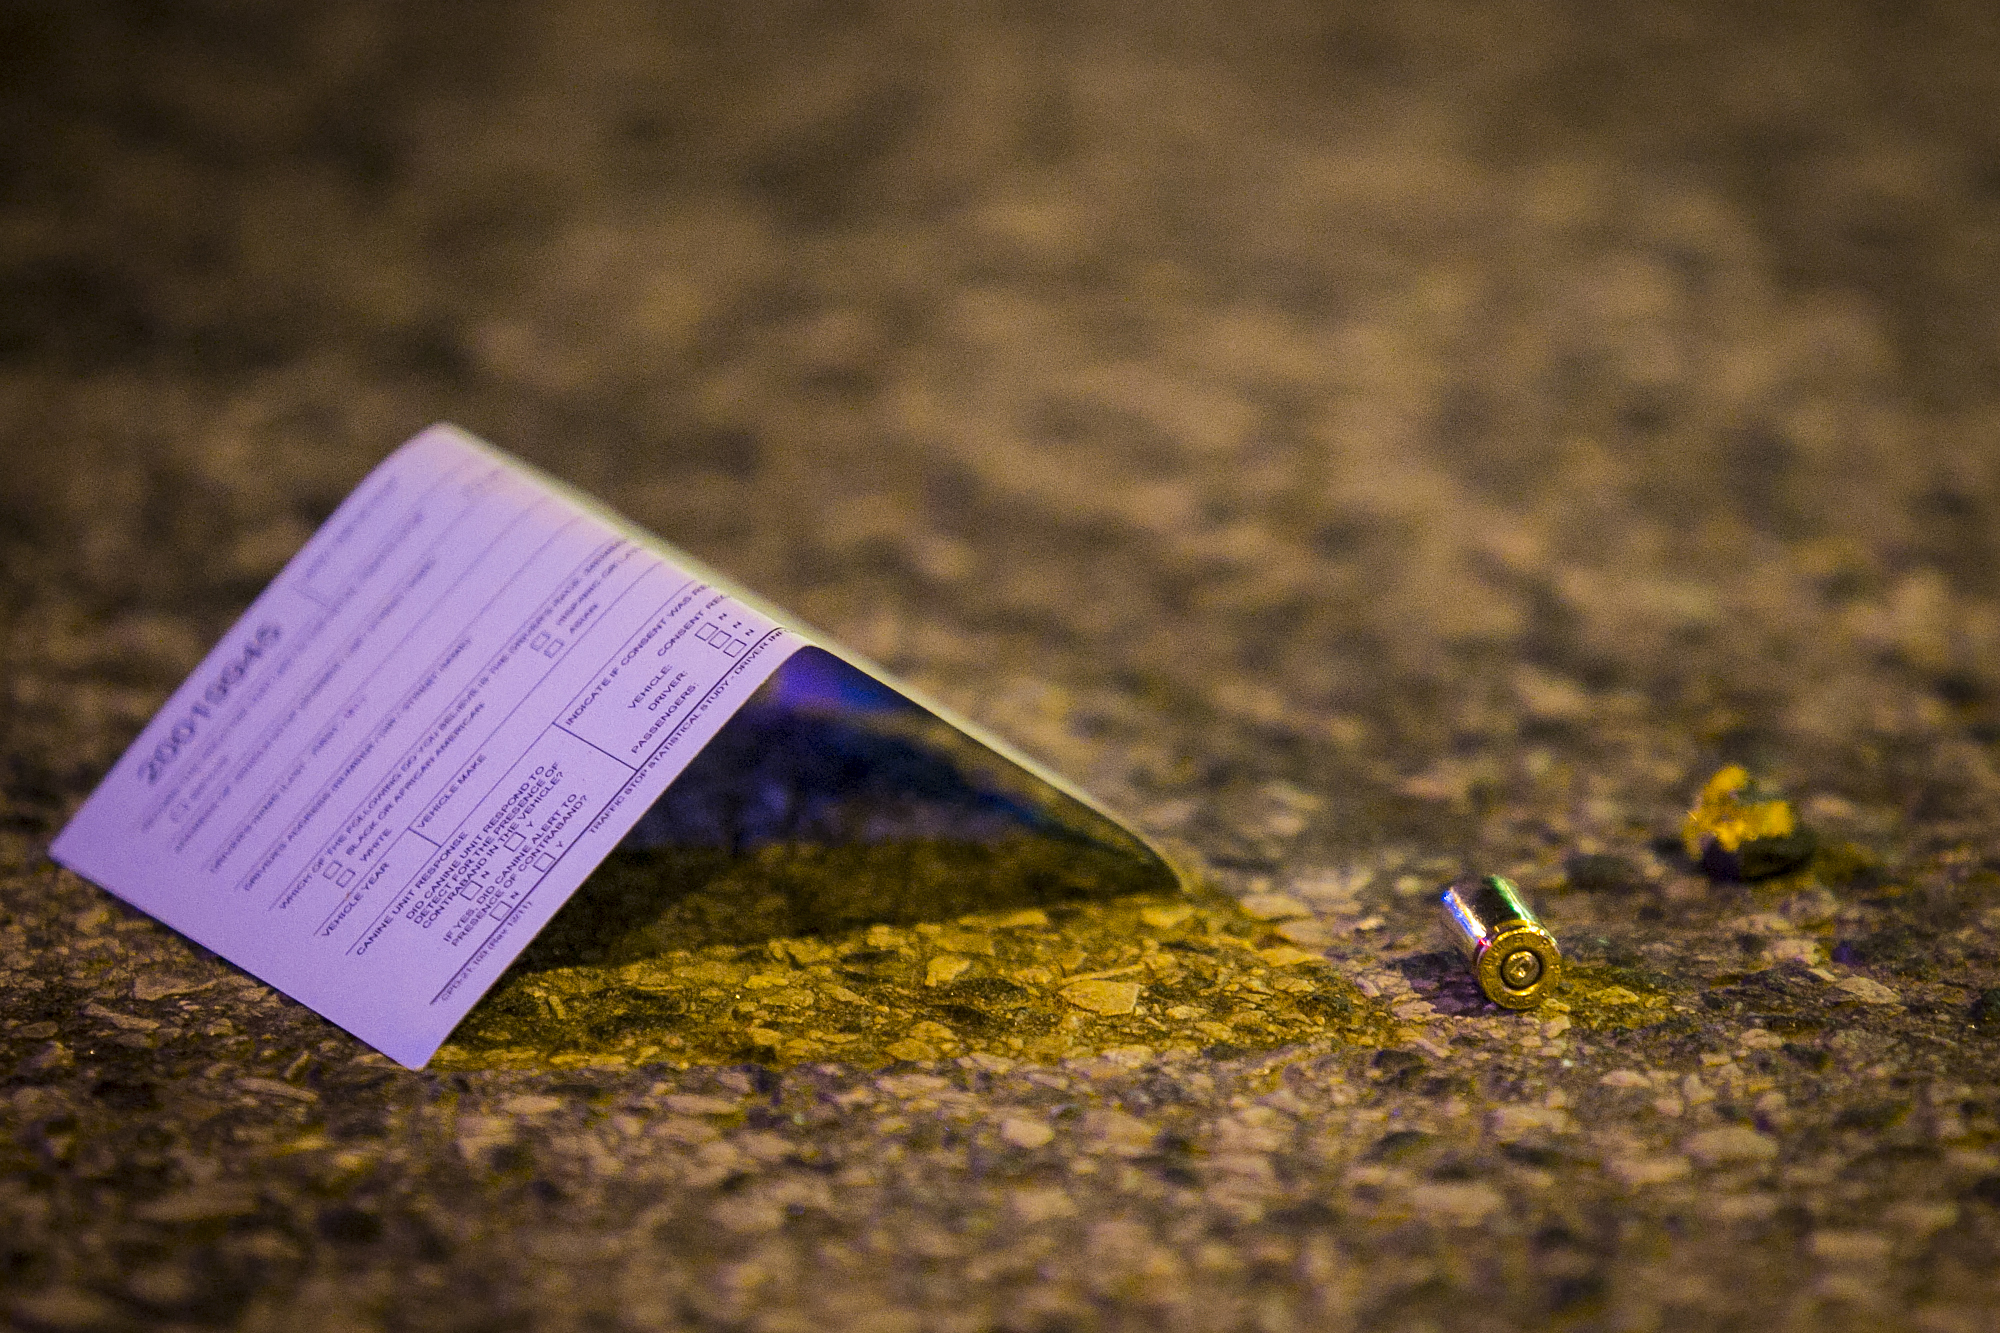 A man was killed in a shooting Oct. 13, 2019, in the 8400 block of South Kenneth Avenue.